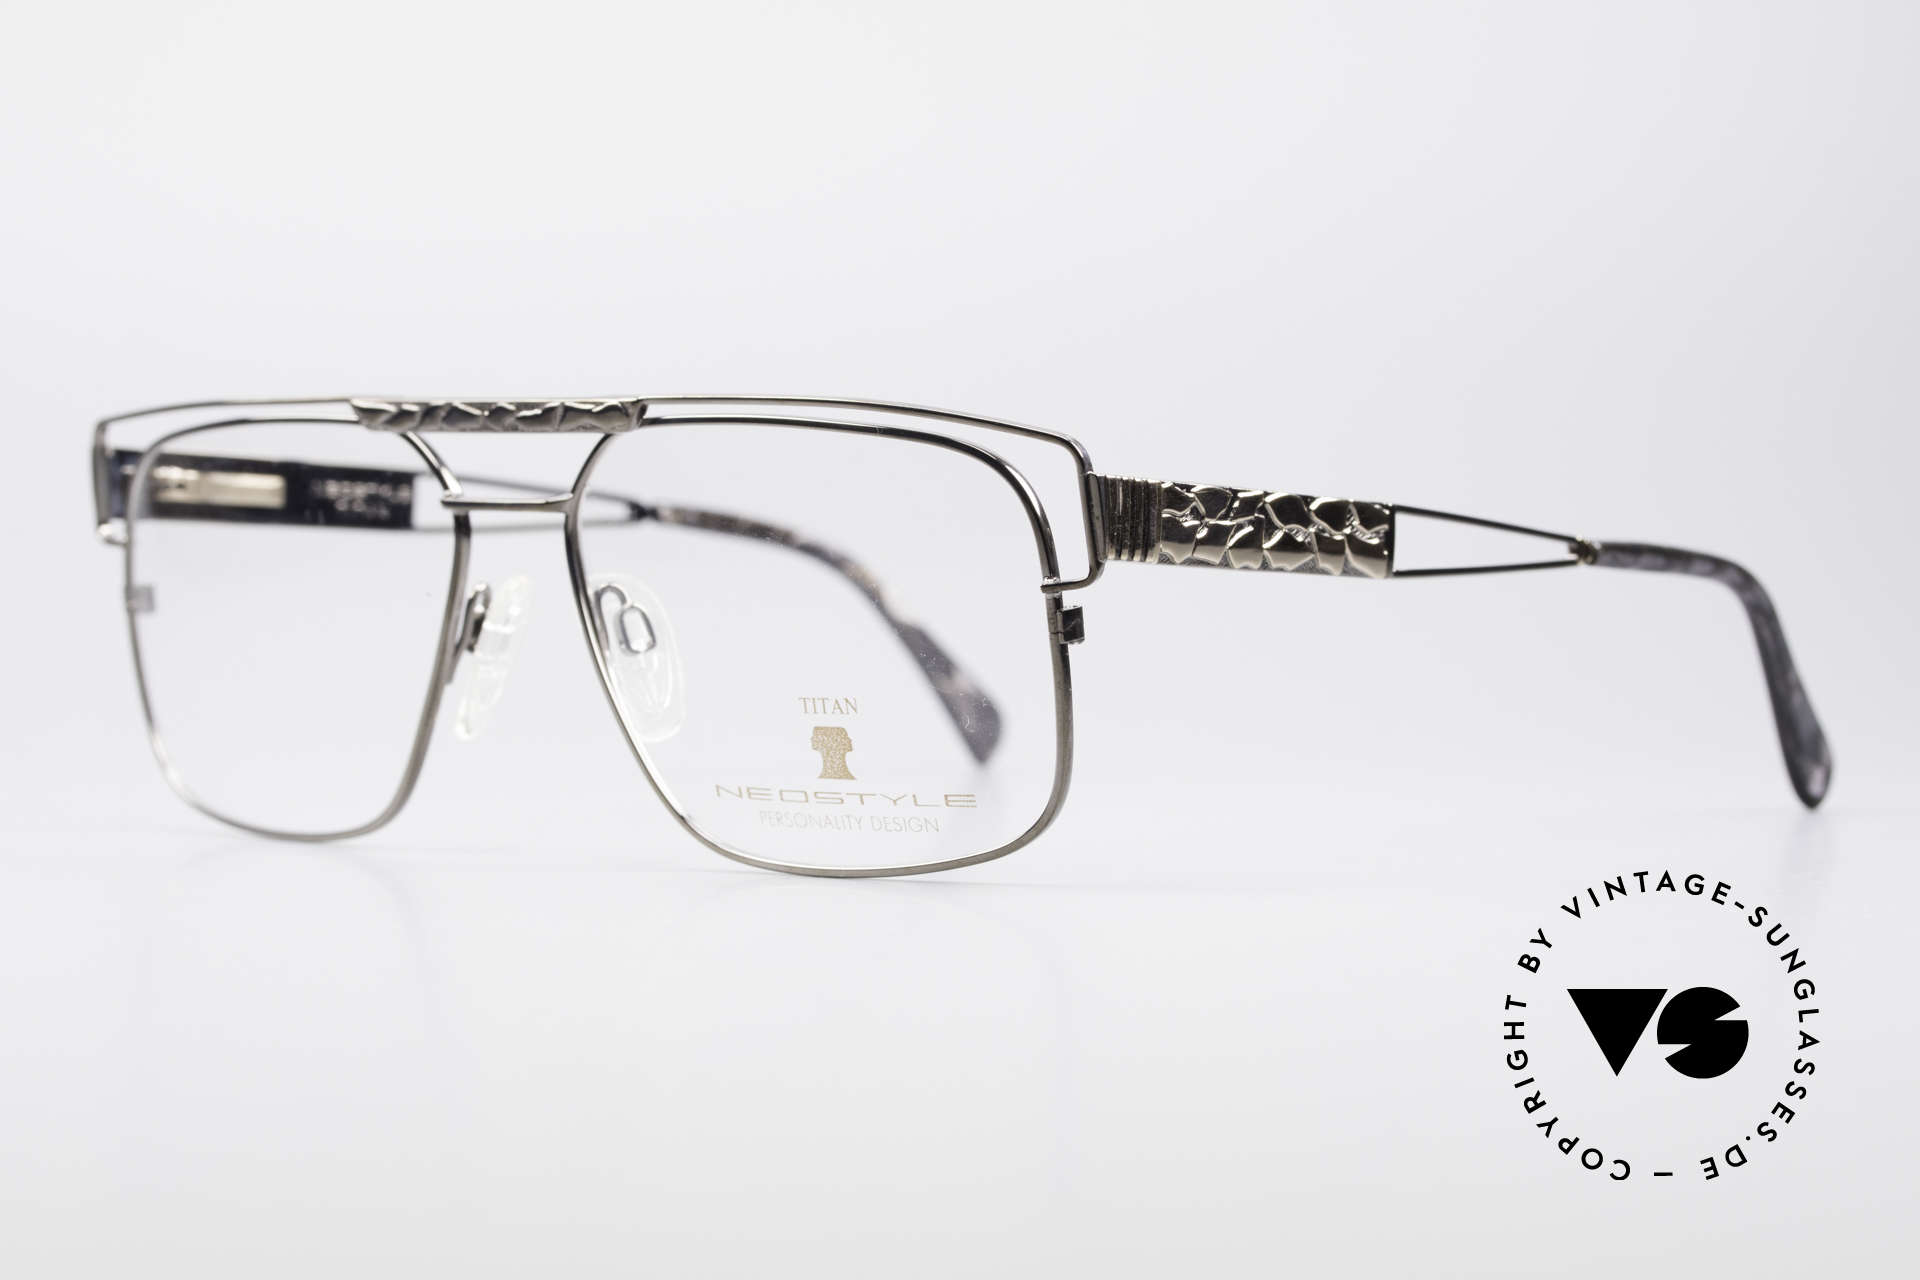 Neostyle Dynasty 430 80's Titanium Eyeglasses Men, with flexible spring hinges & orig. Neostyle box, Made for Men